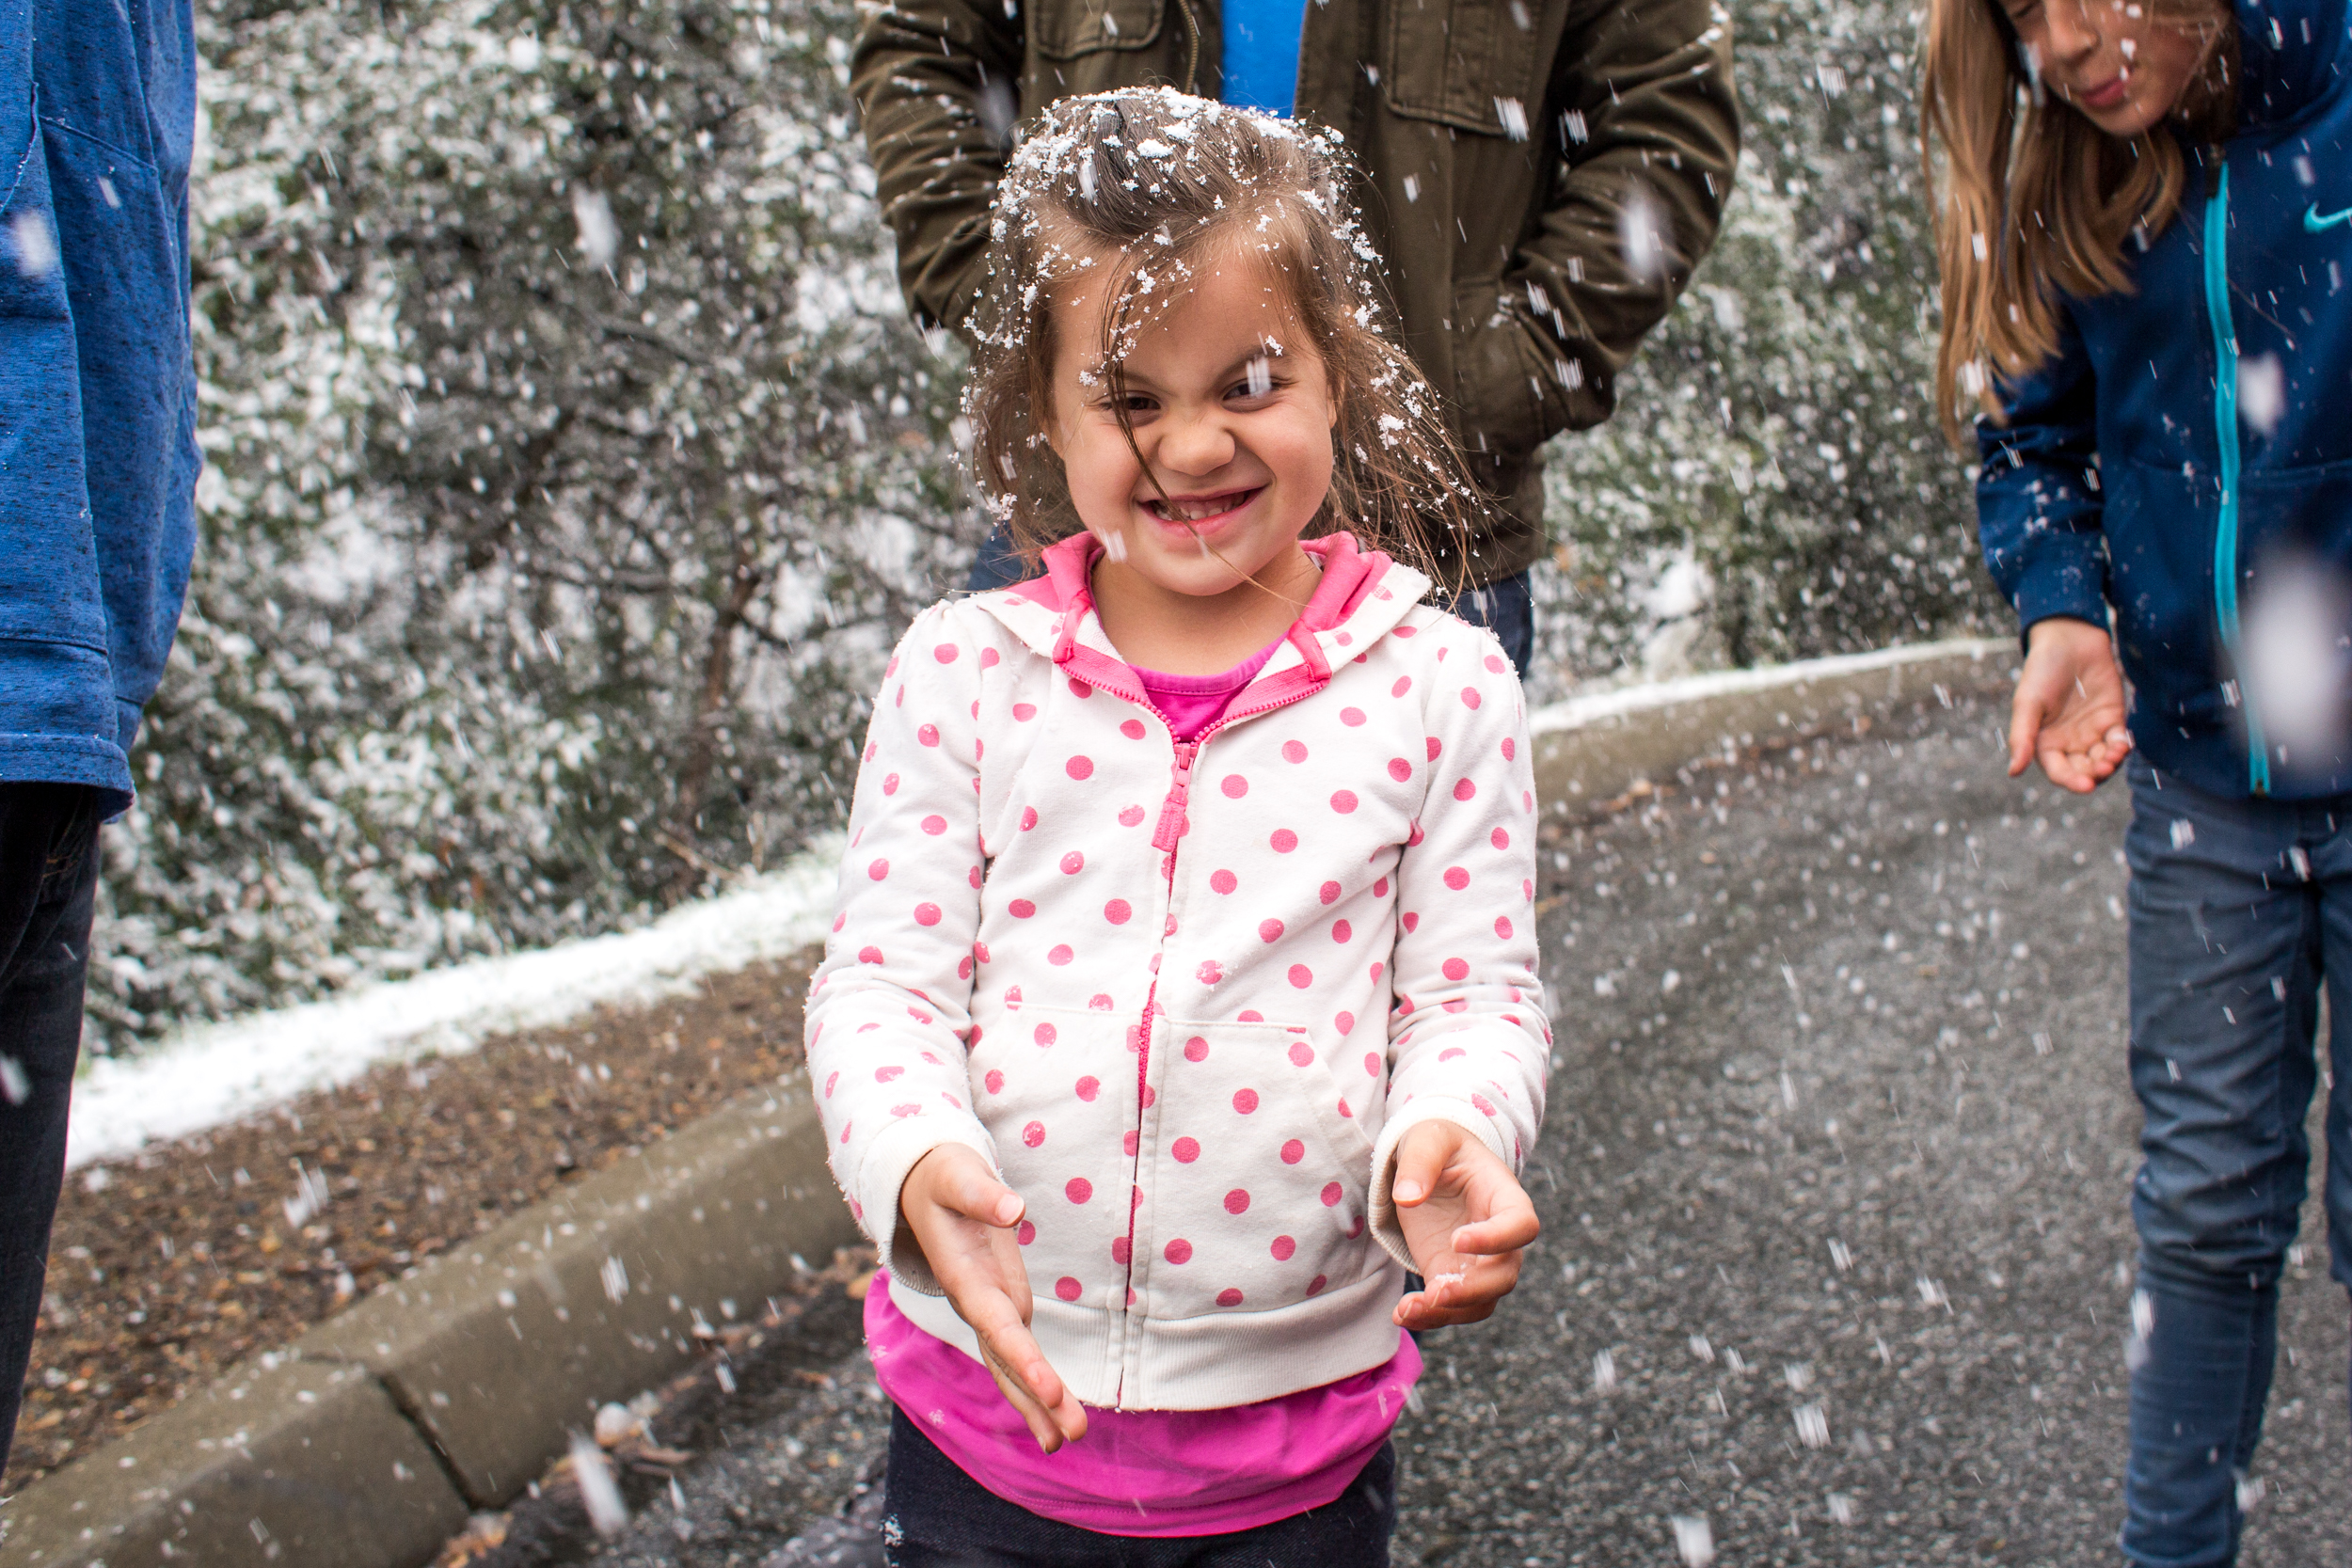 She was mesmerized, I think this may have been the first time she's seen snow coming down.